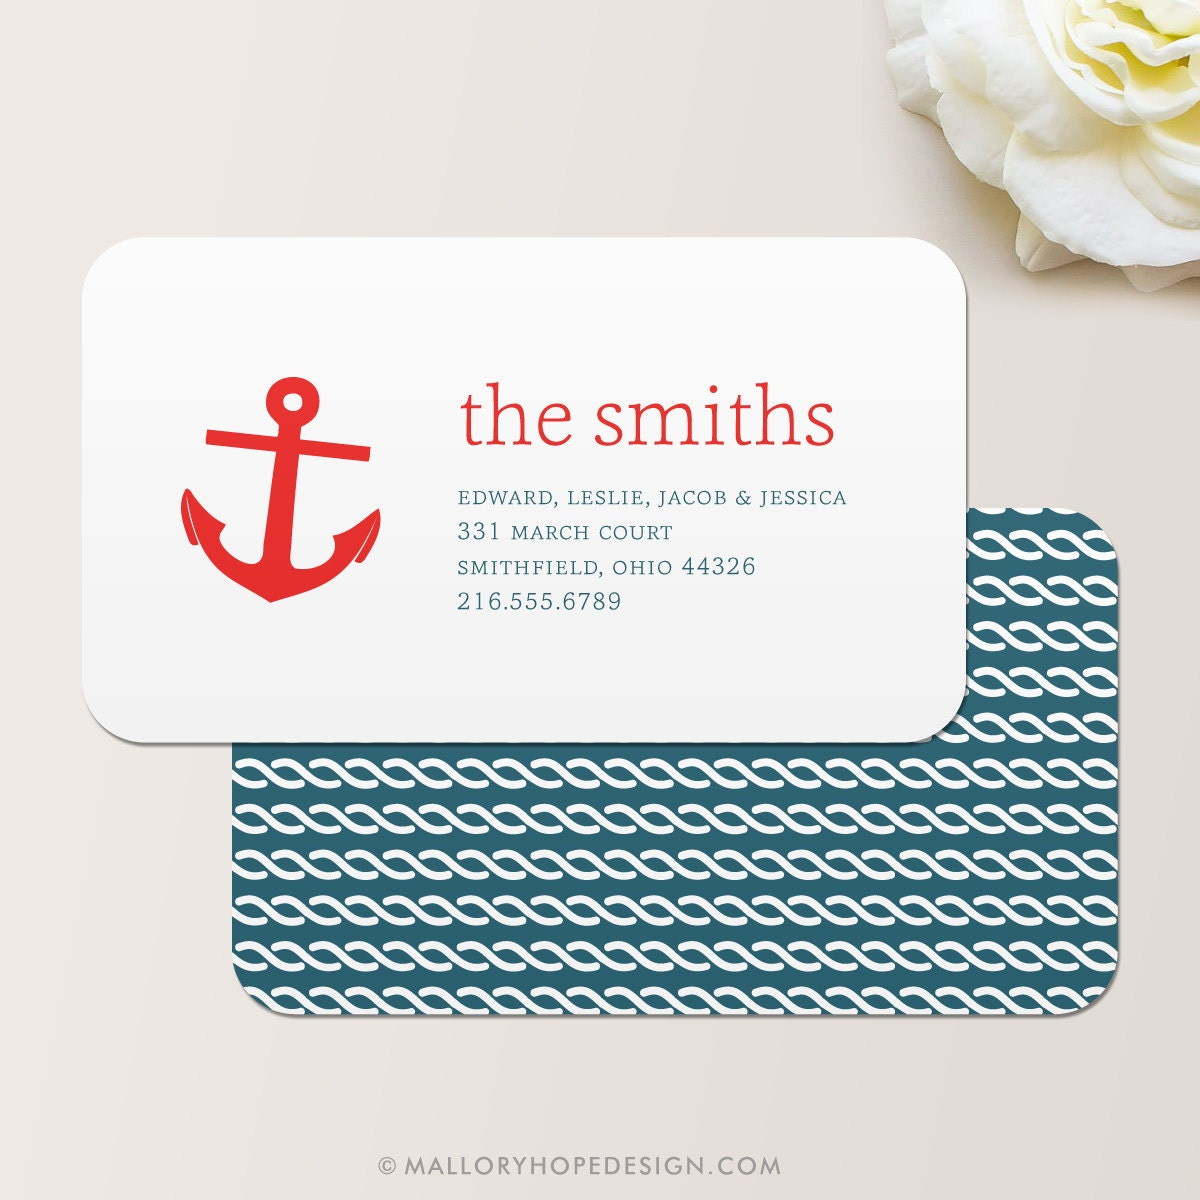 18 Awesome Business Card Design Etsy Graphics | Business Cards Ideas